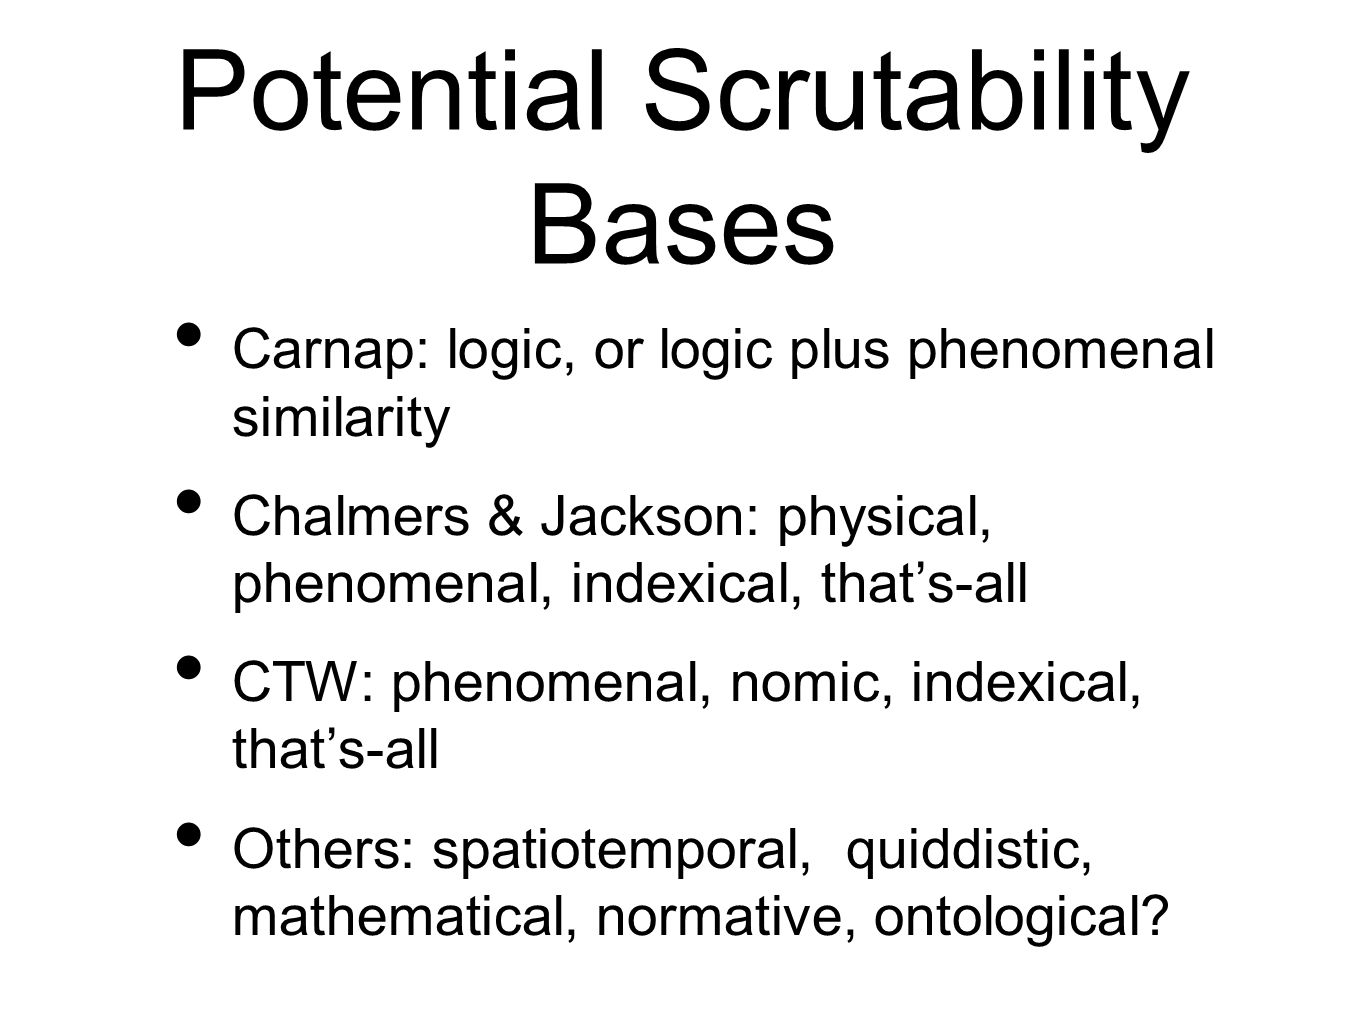 Potential Scrutability Bases